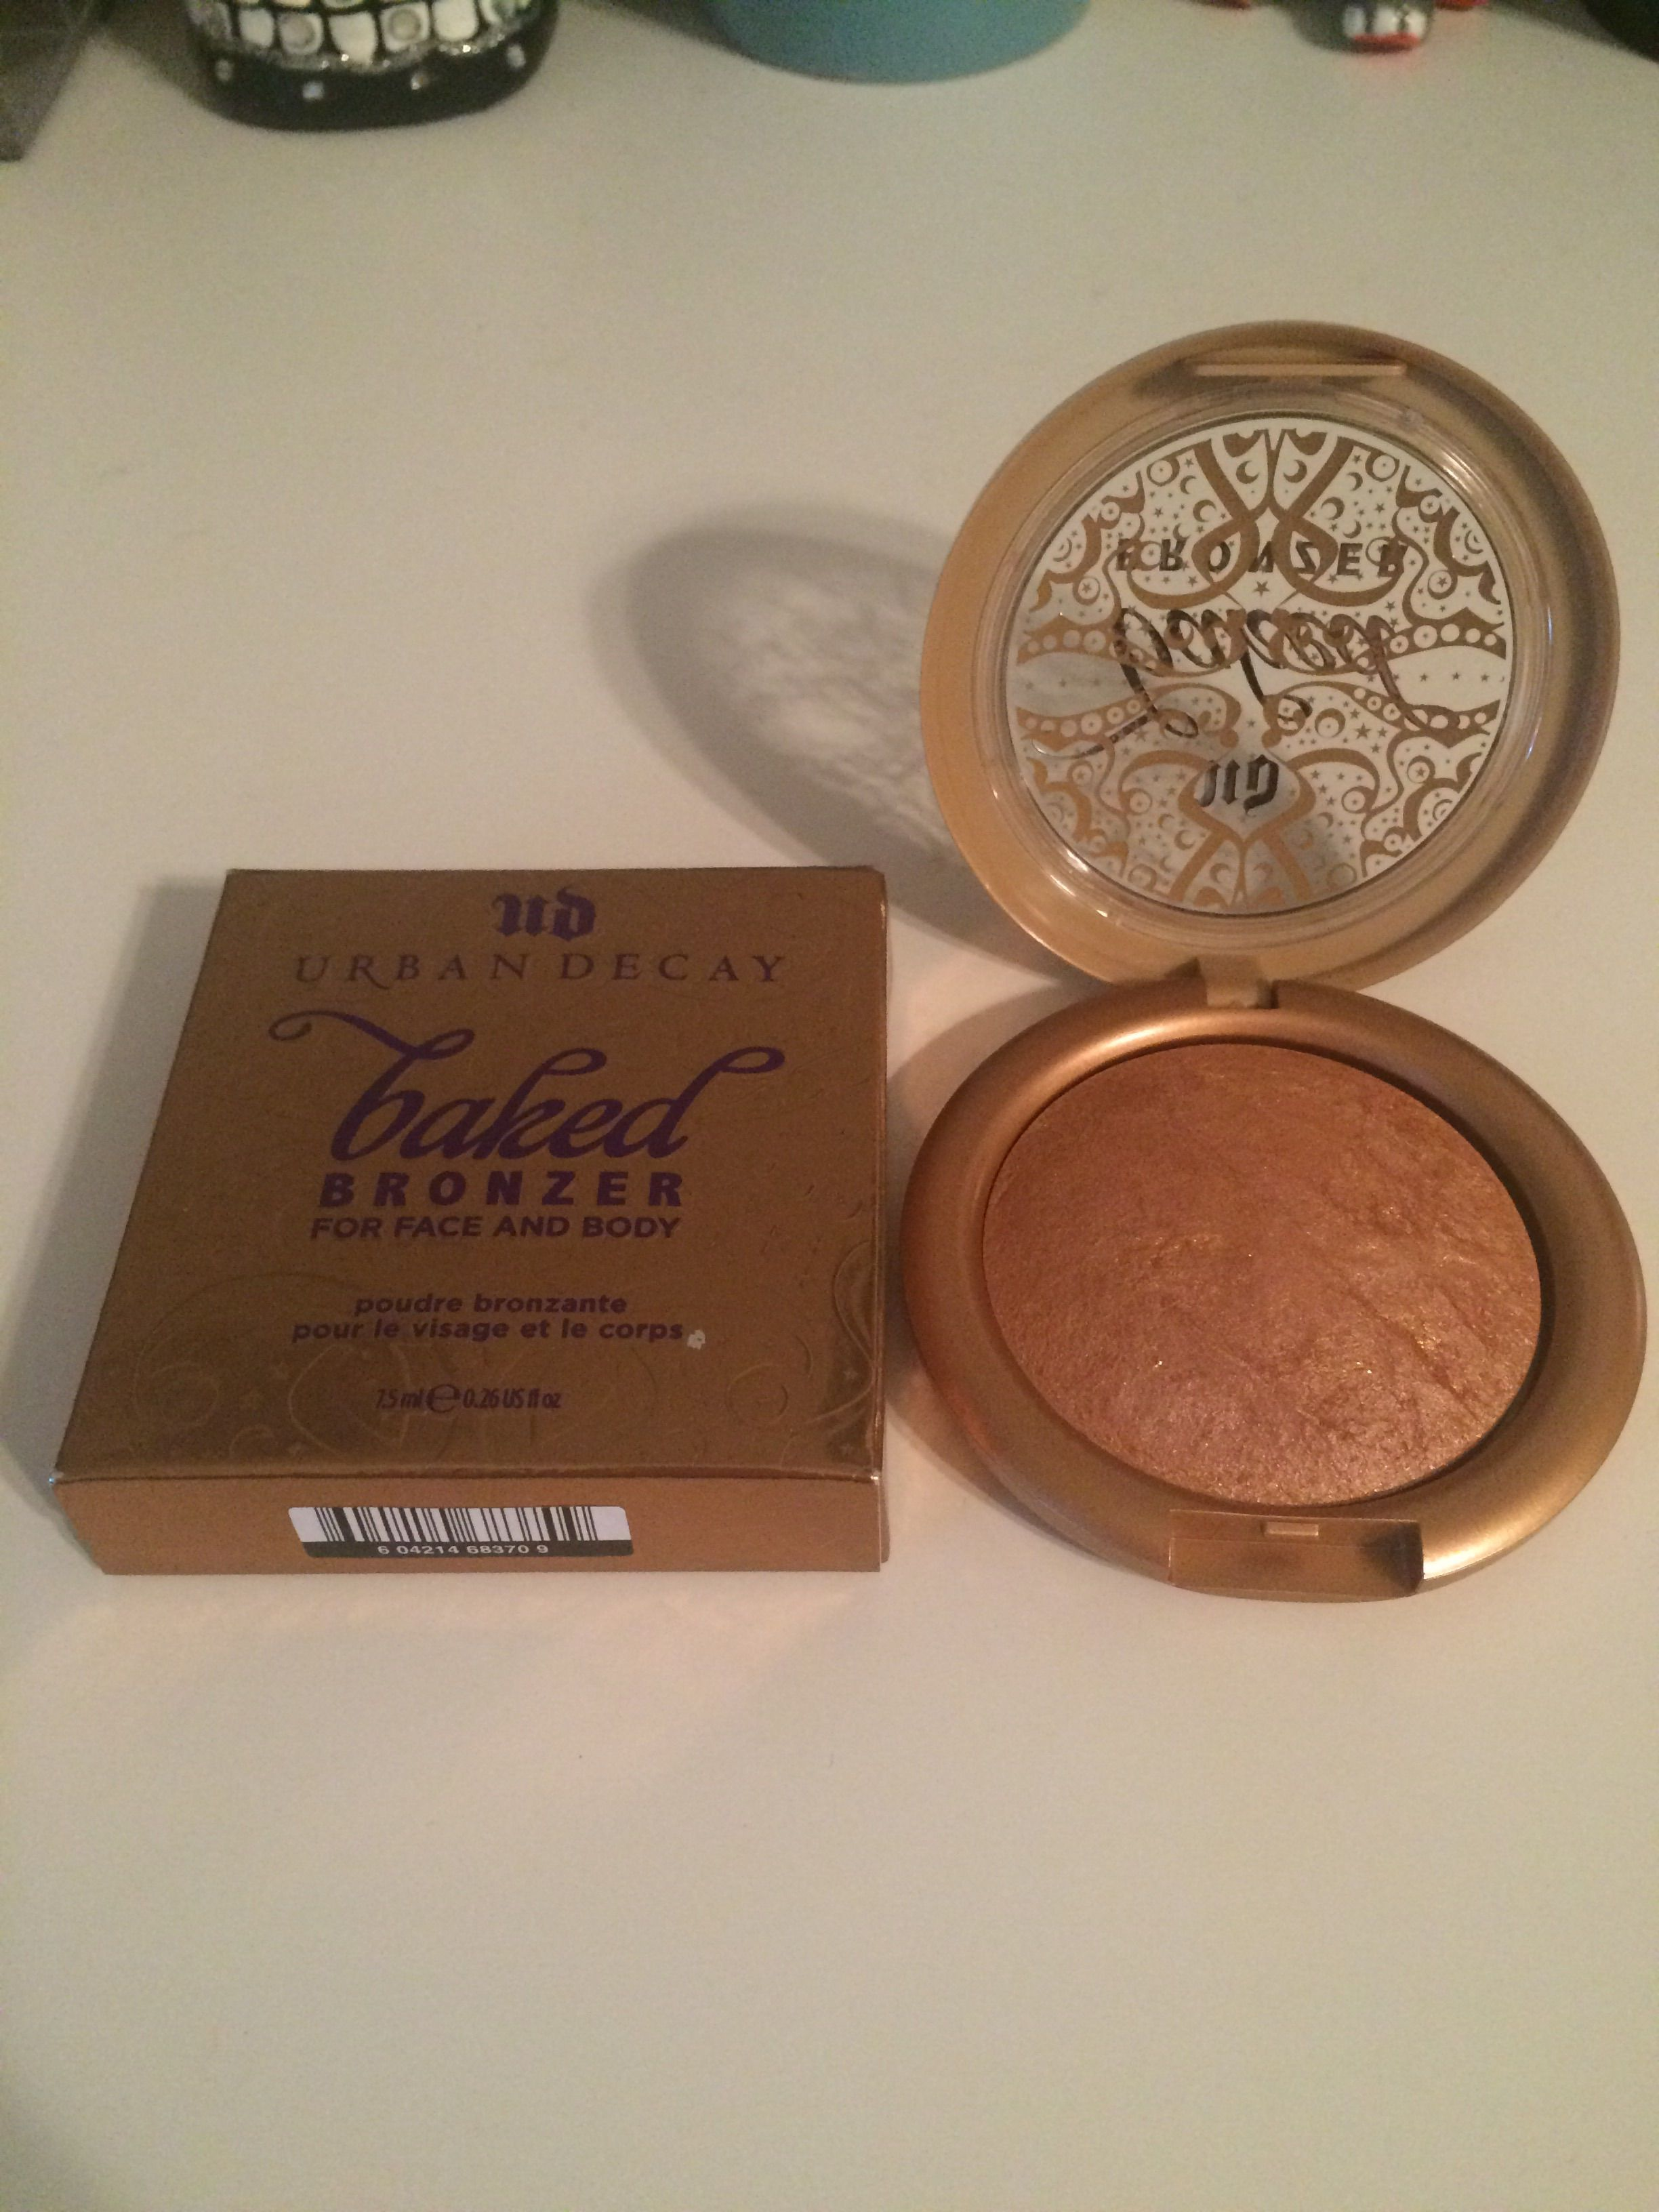 Sell/Swap Urban Decay Baked Bronzer in Gilded. Swatched